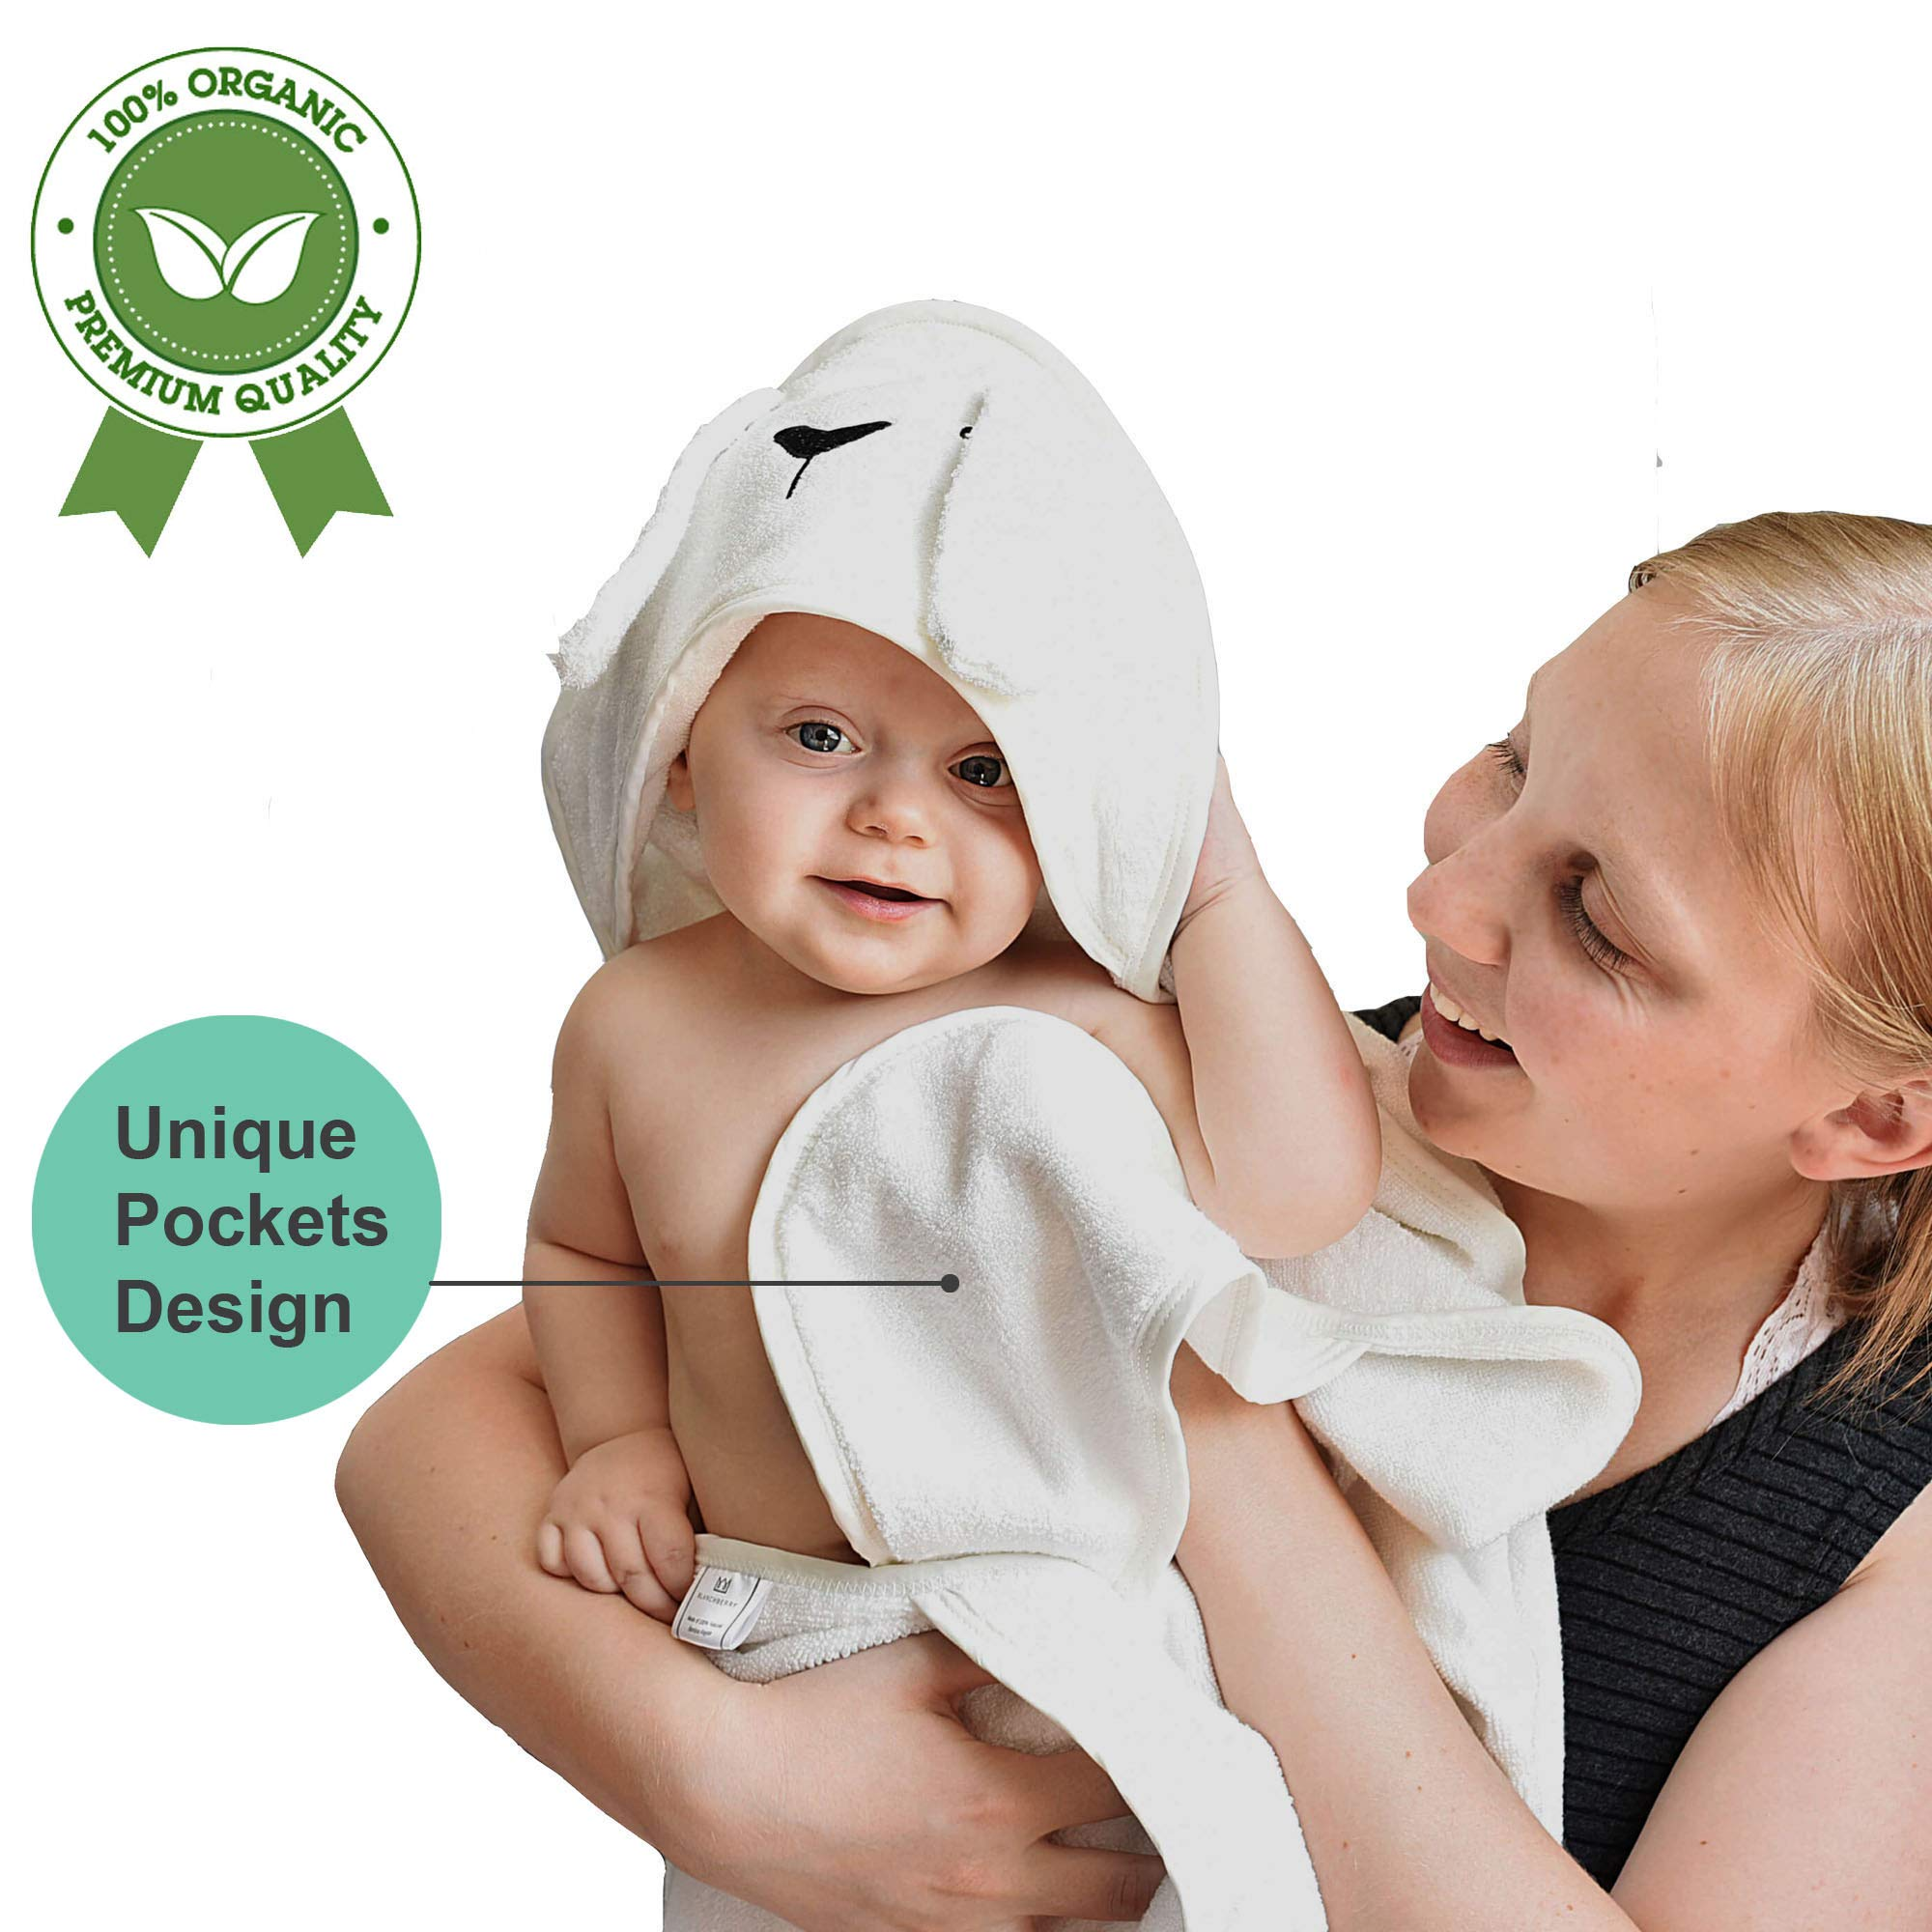 Hooded Baby Towel | Organic Bamboo Baby Towel with Pockets | 2 X Thick, Soft & Large | Baby Bath and Beach Towel for Boy or Girl | Baby Shower Gift